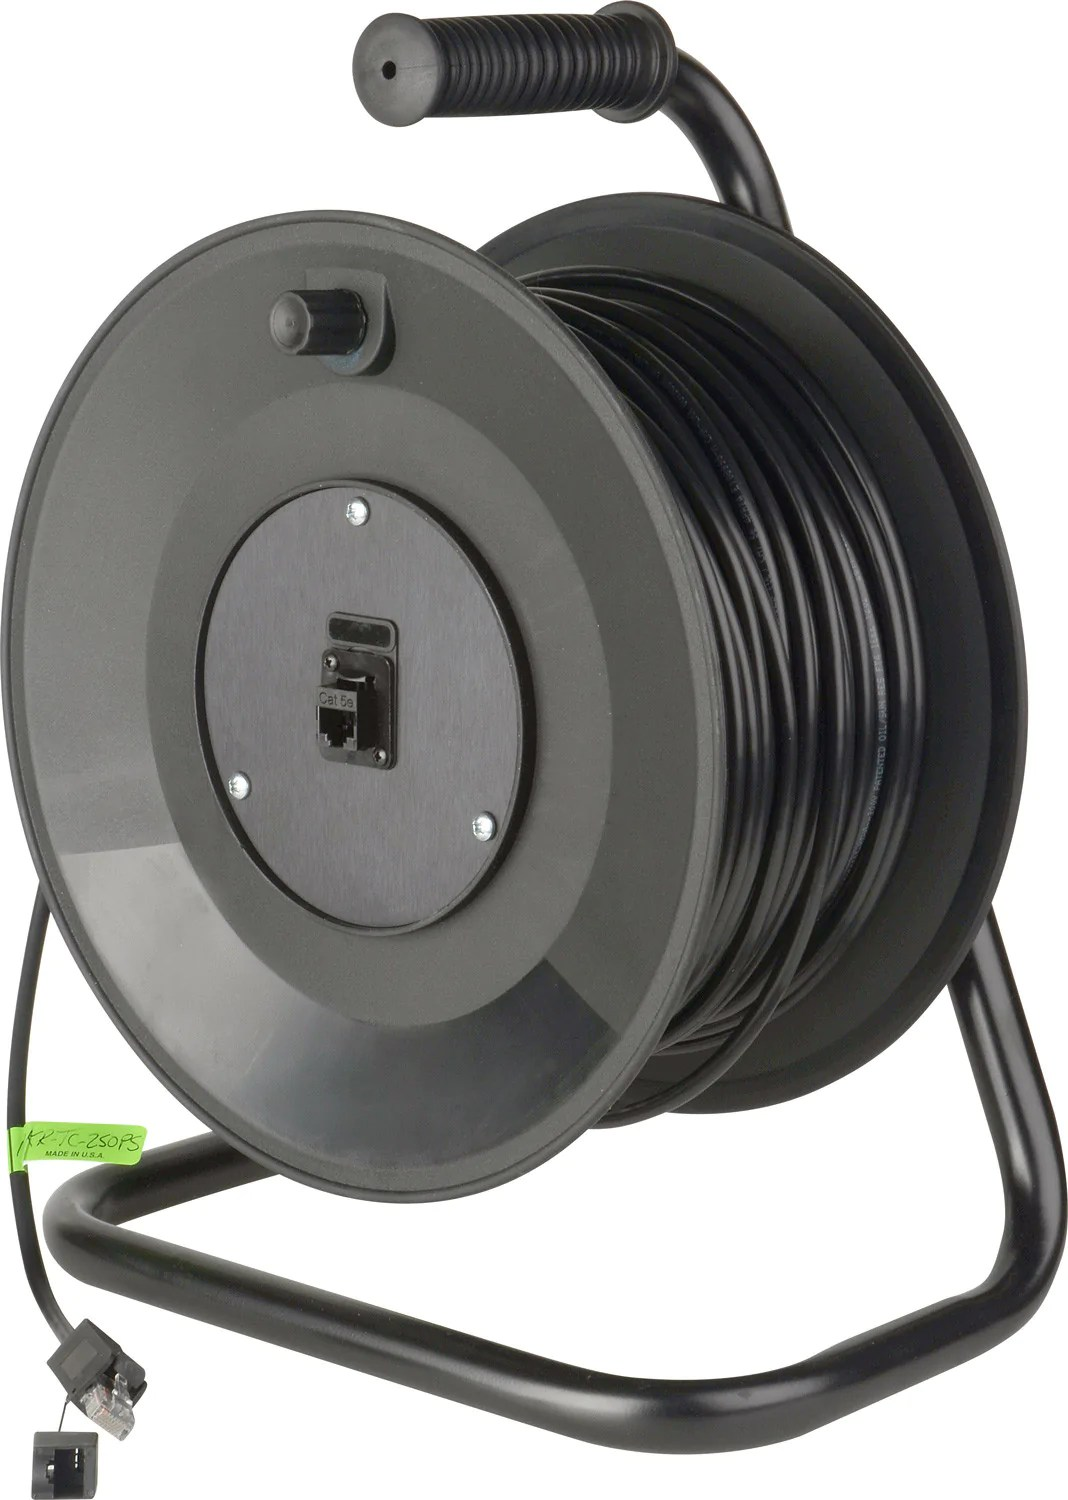 hight resolution of buy cable reel connect n go reel belden 7923a cat5e with pro shell connectors 250ft